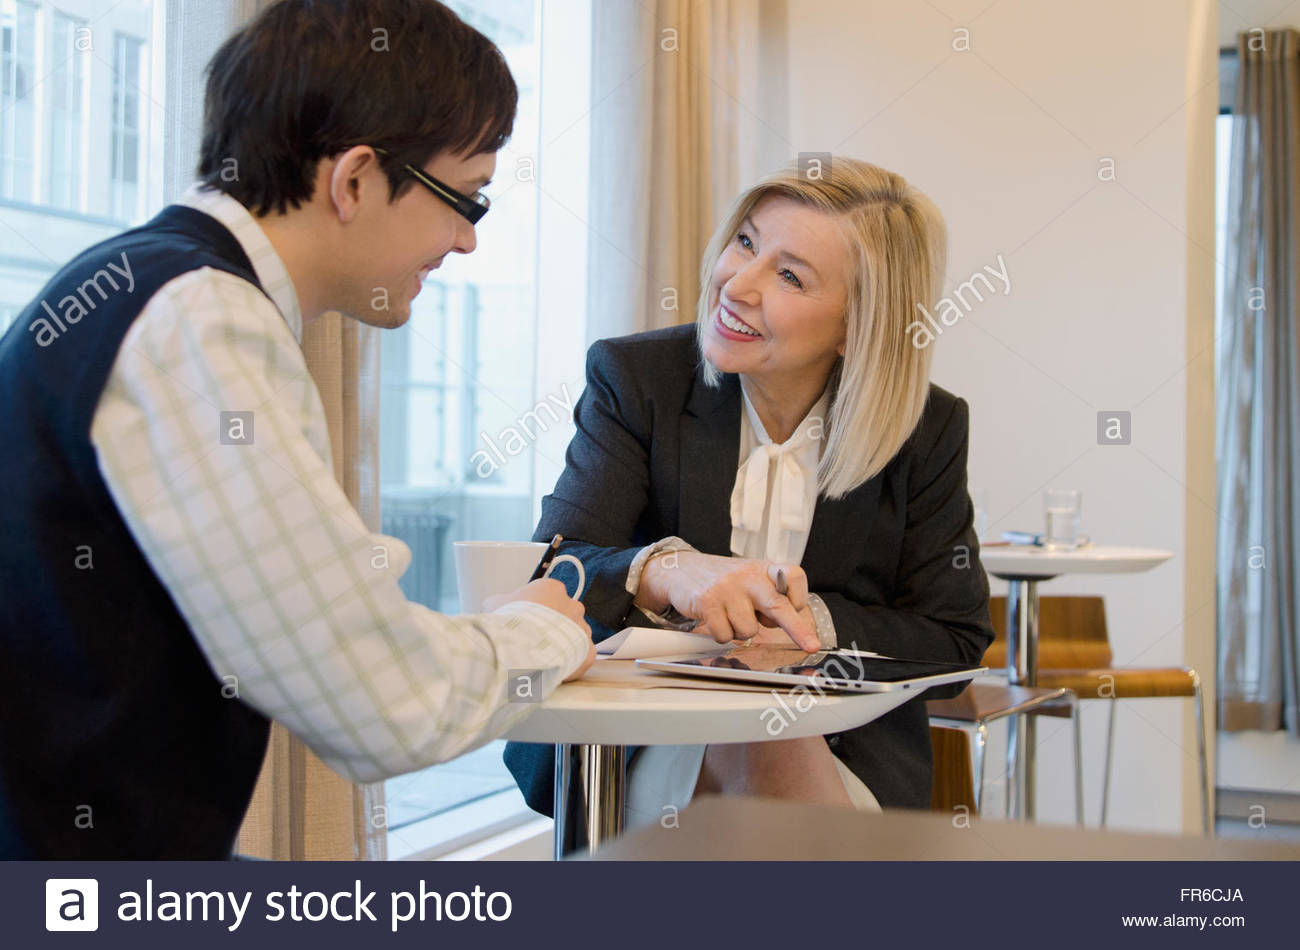 business luncheon meeting - Stock Image